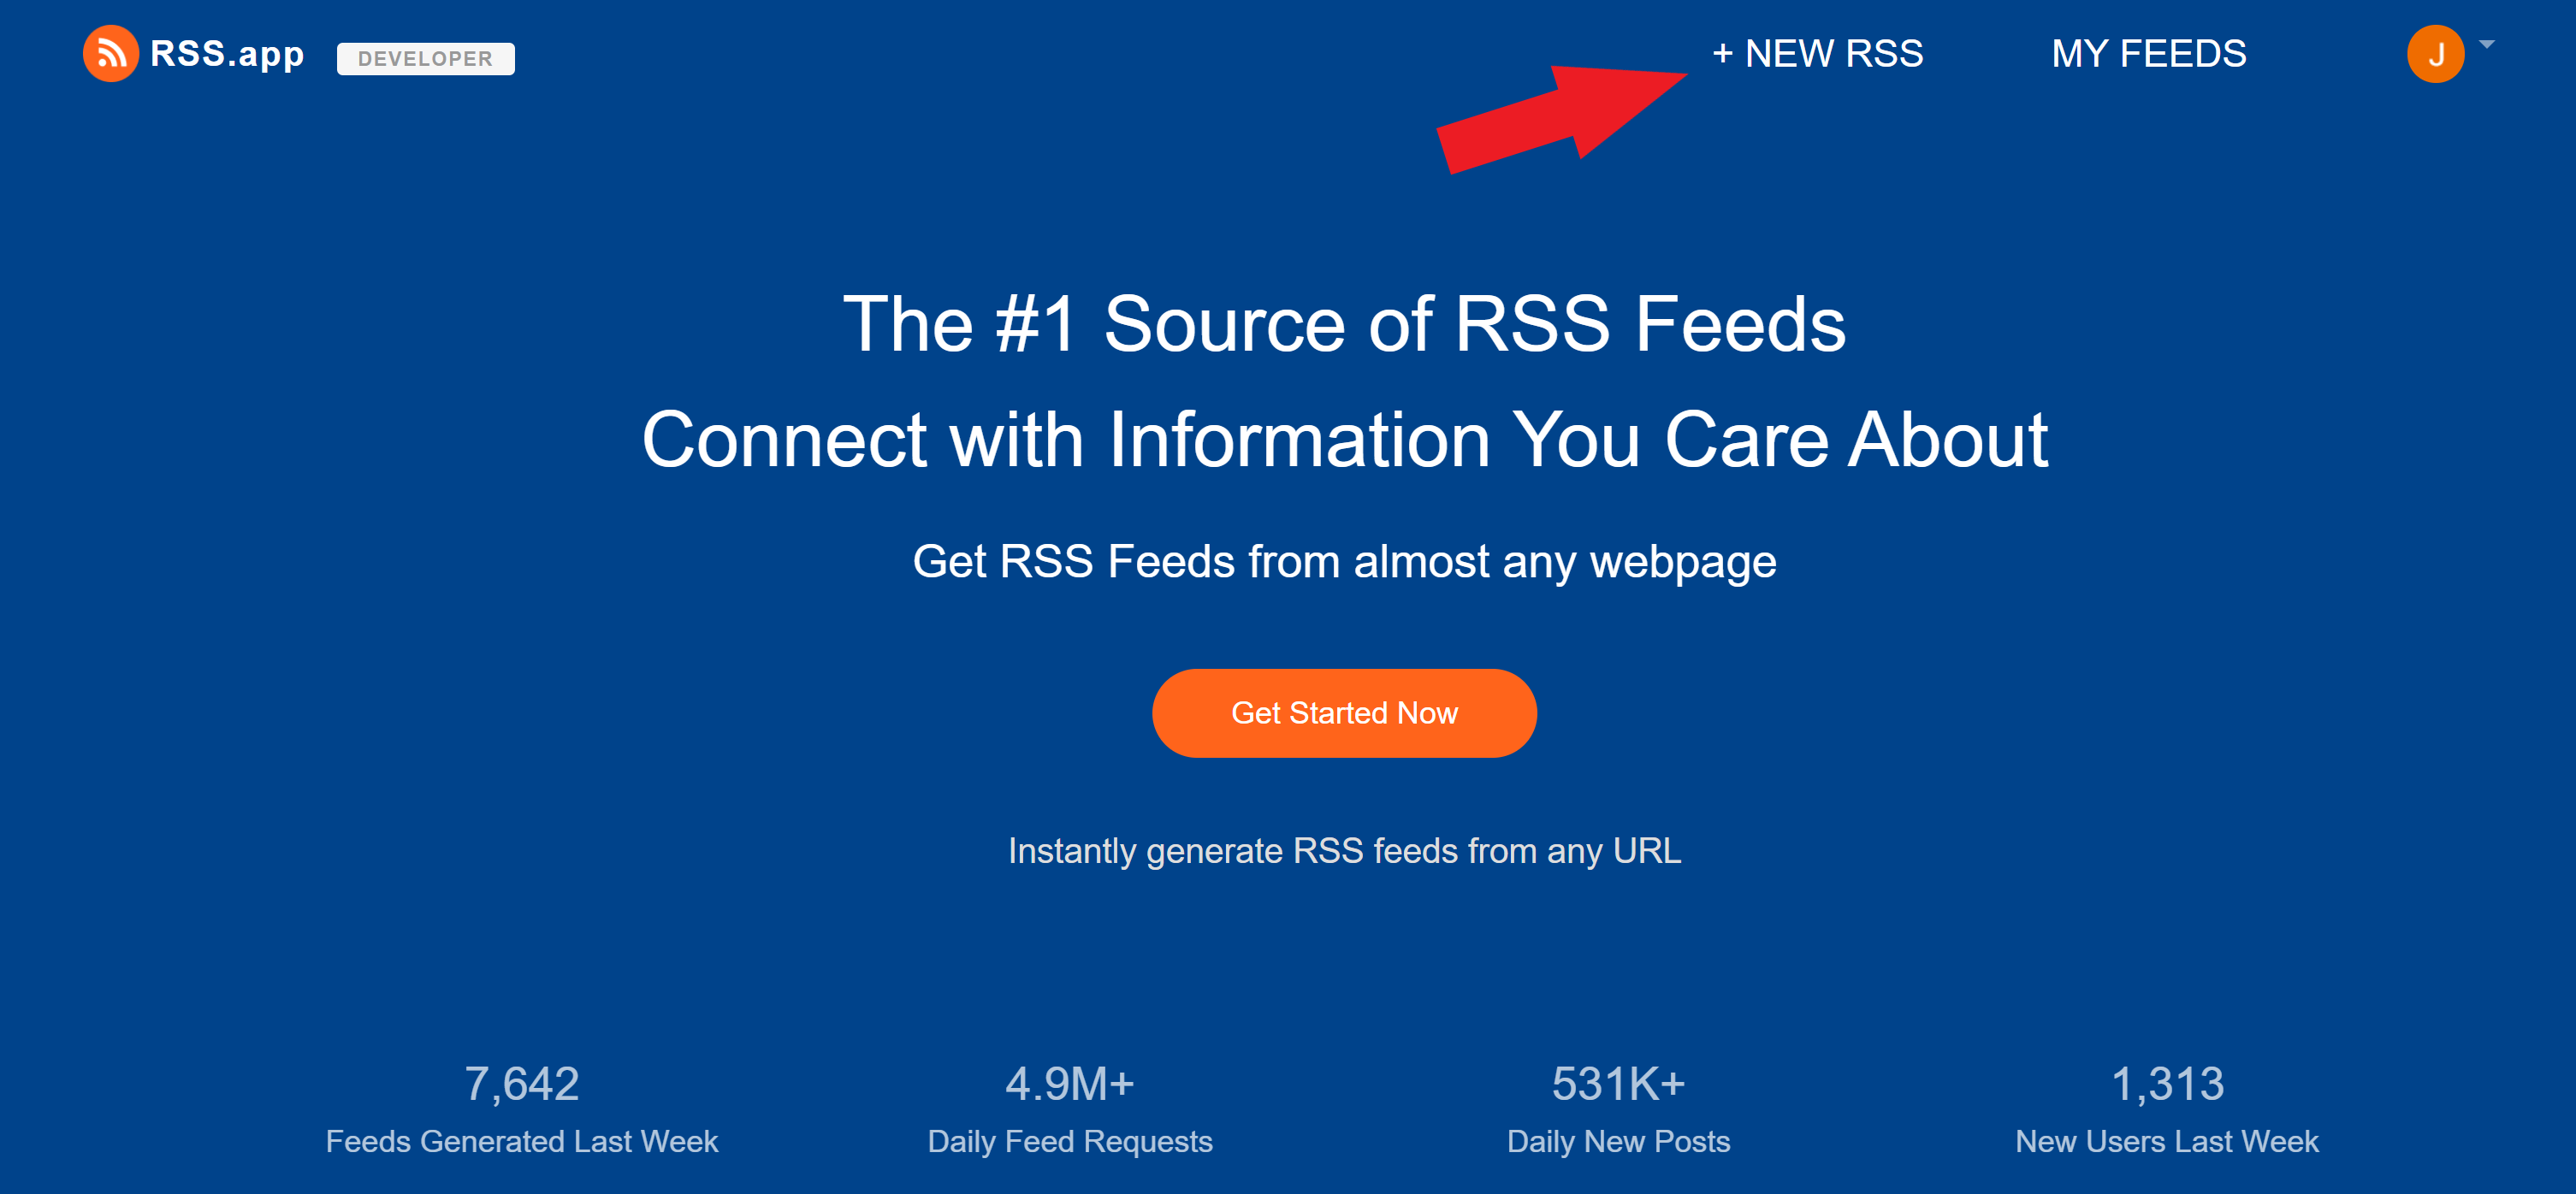 Create New RSS